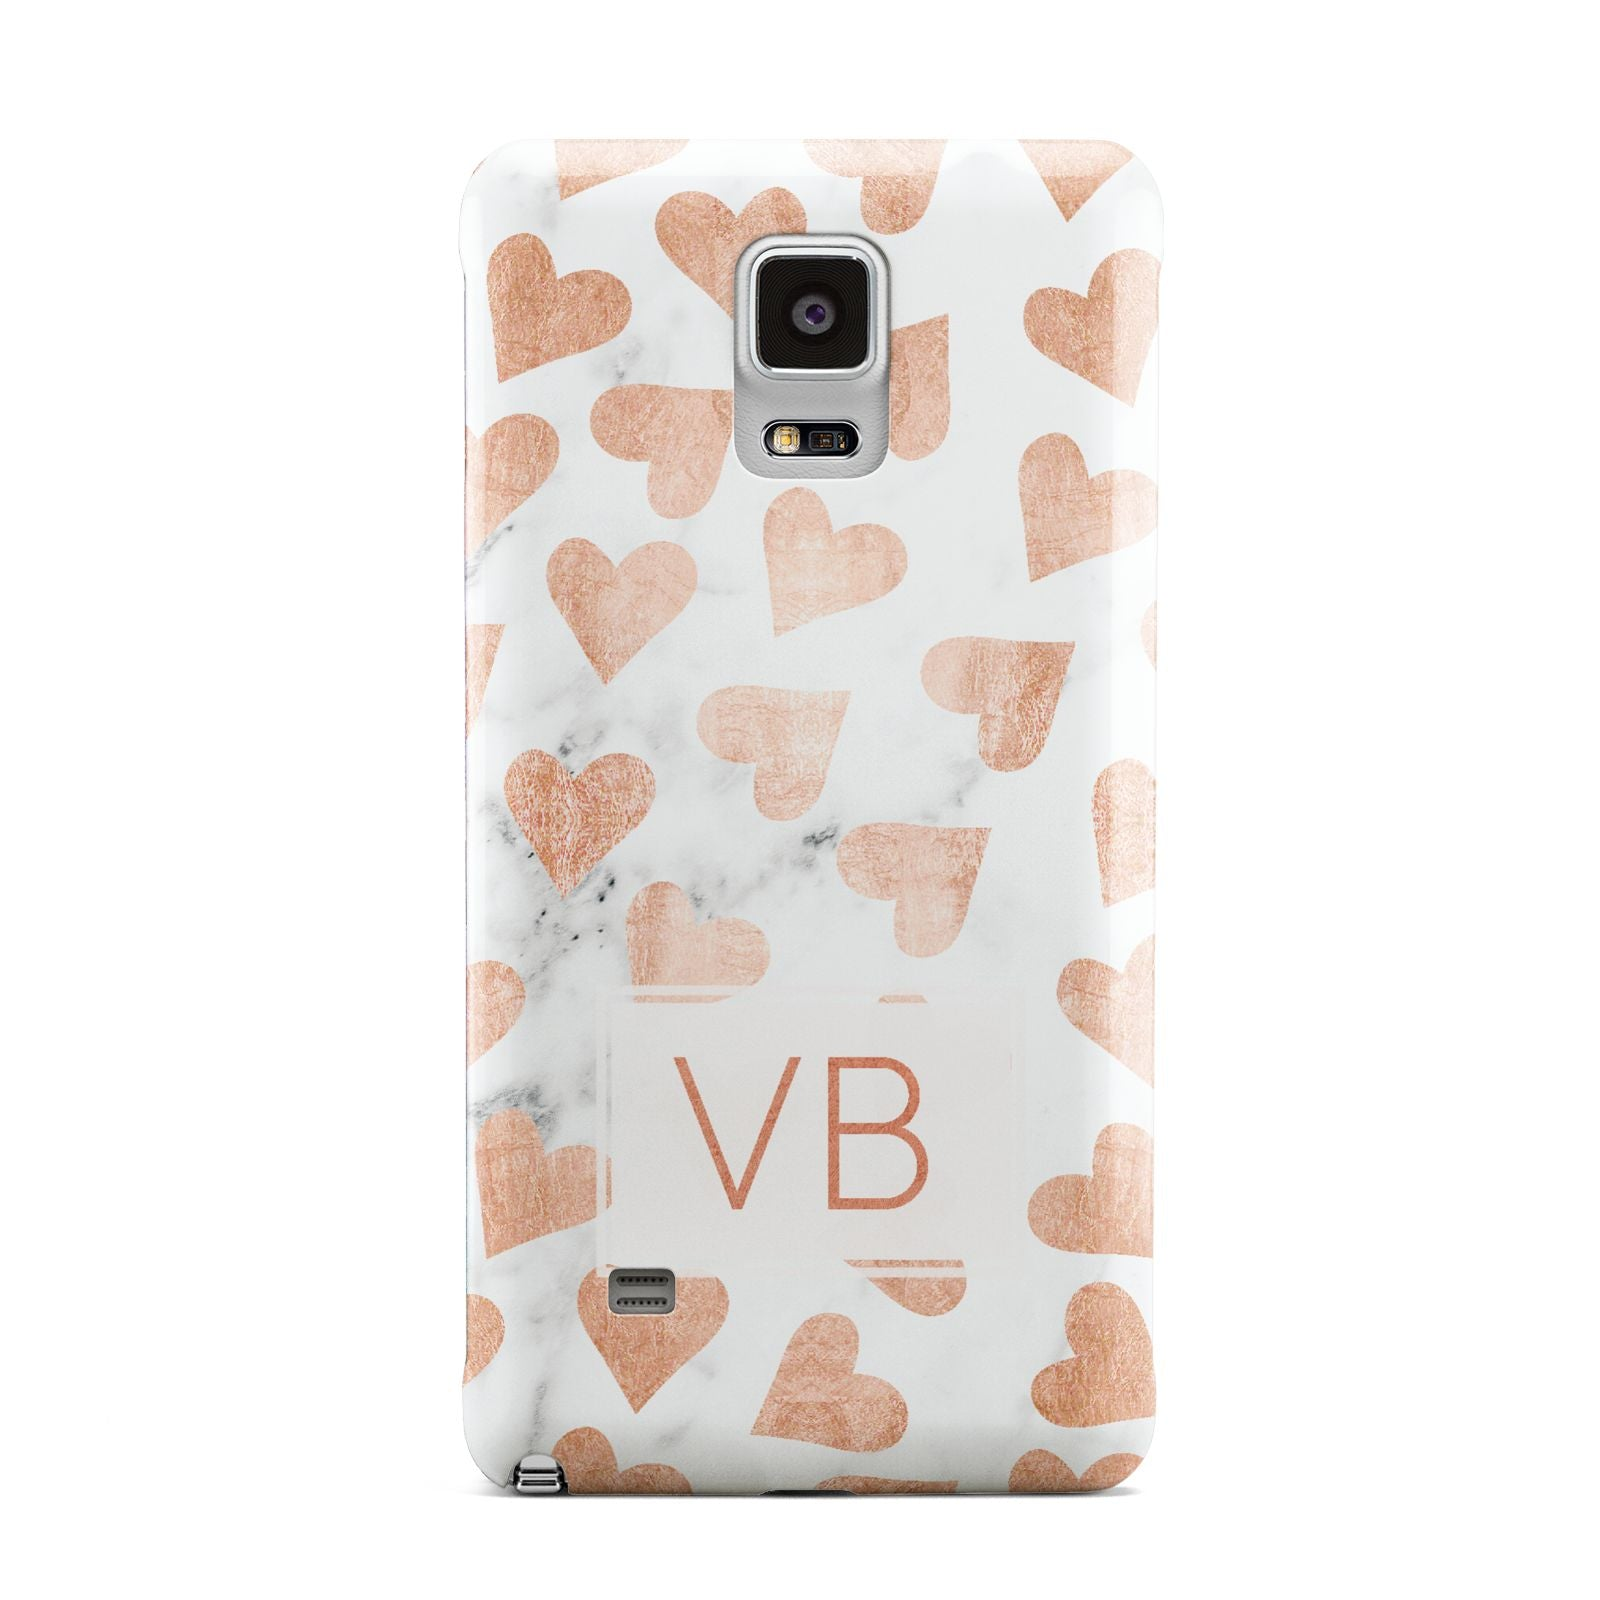 Personalised Heart Initialled Marble Samsung Galaxy Note 4 Case